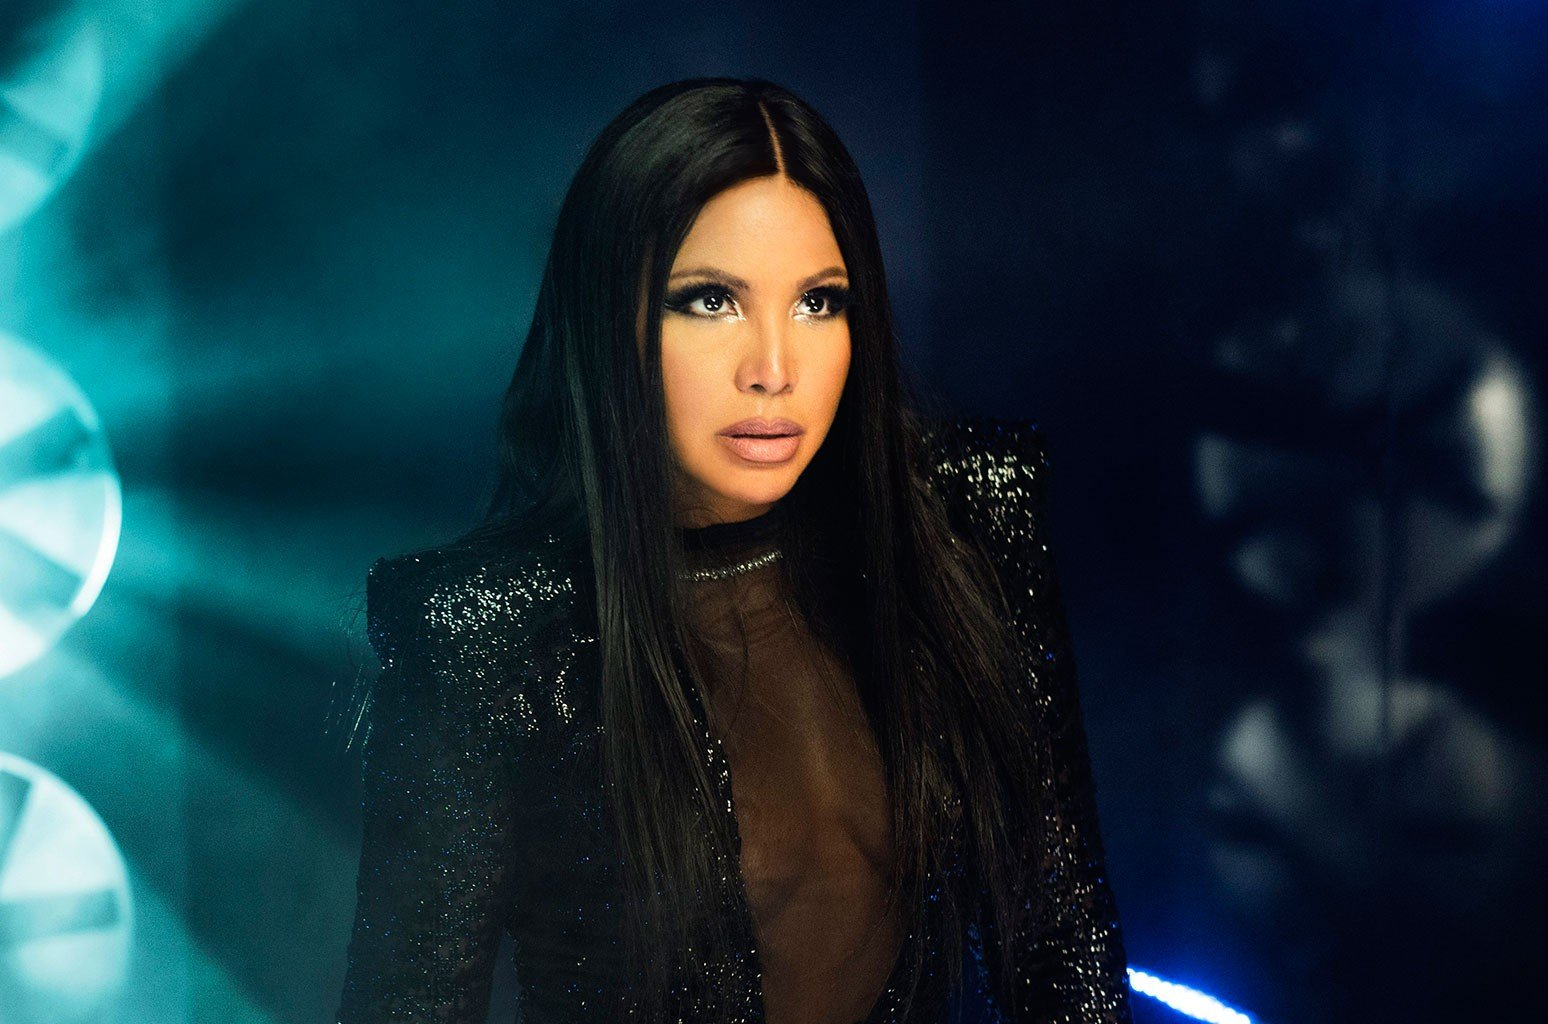 Toni Braxton Sends Love To Fans For Christmas – See Her Video